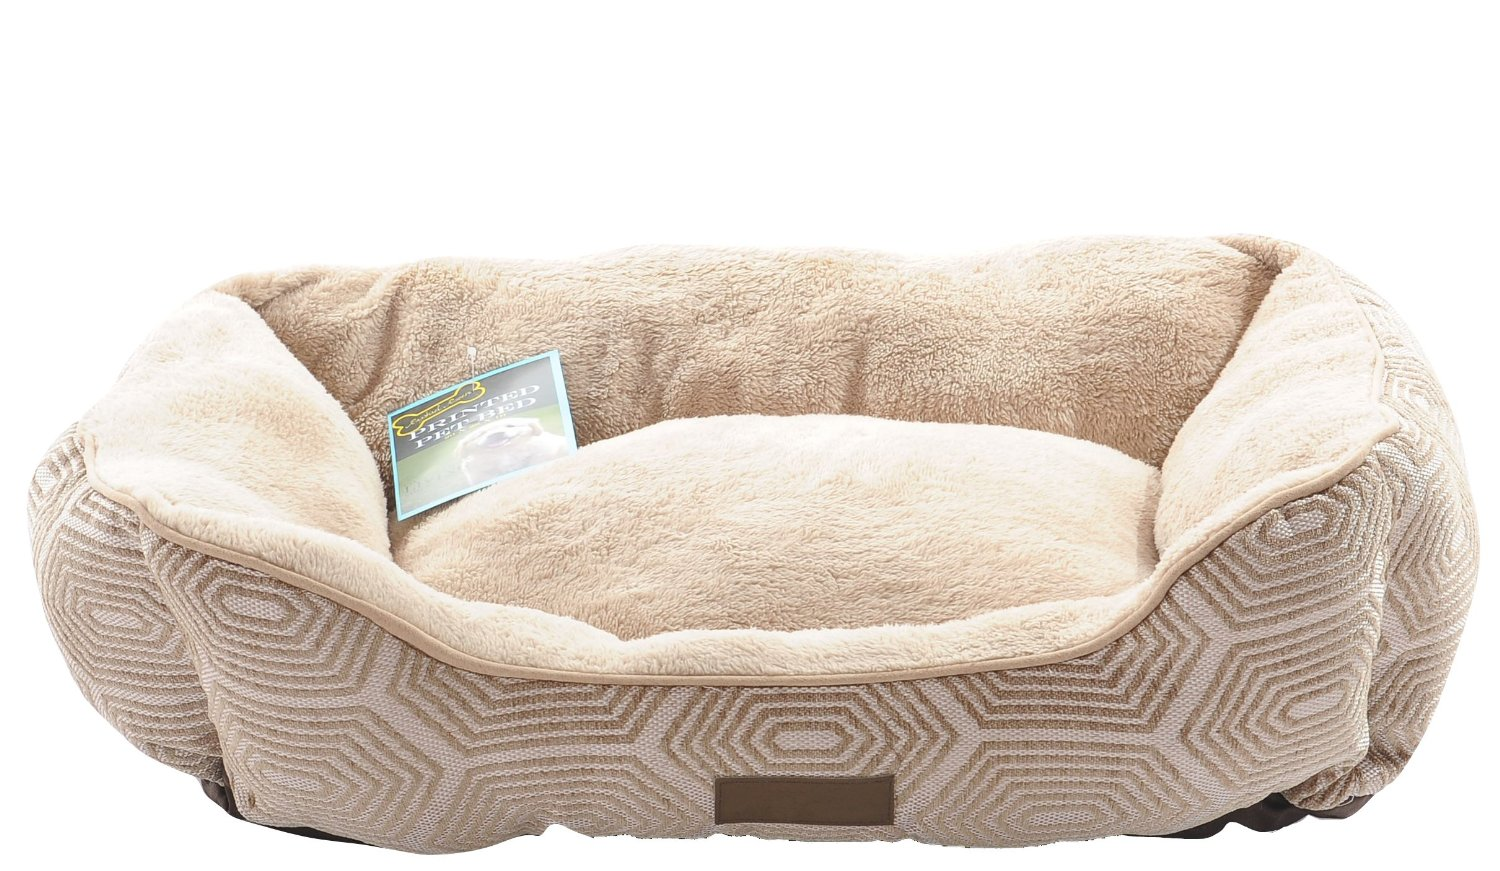 Big Soft Comfy Sofas Sofa Parts Legs Not Just Another Southern Gal Pooch Plush Pet